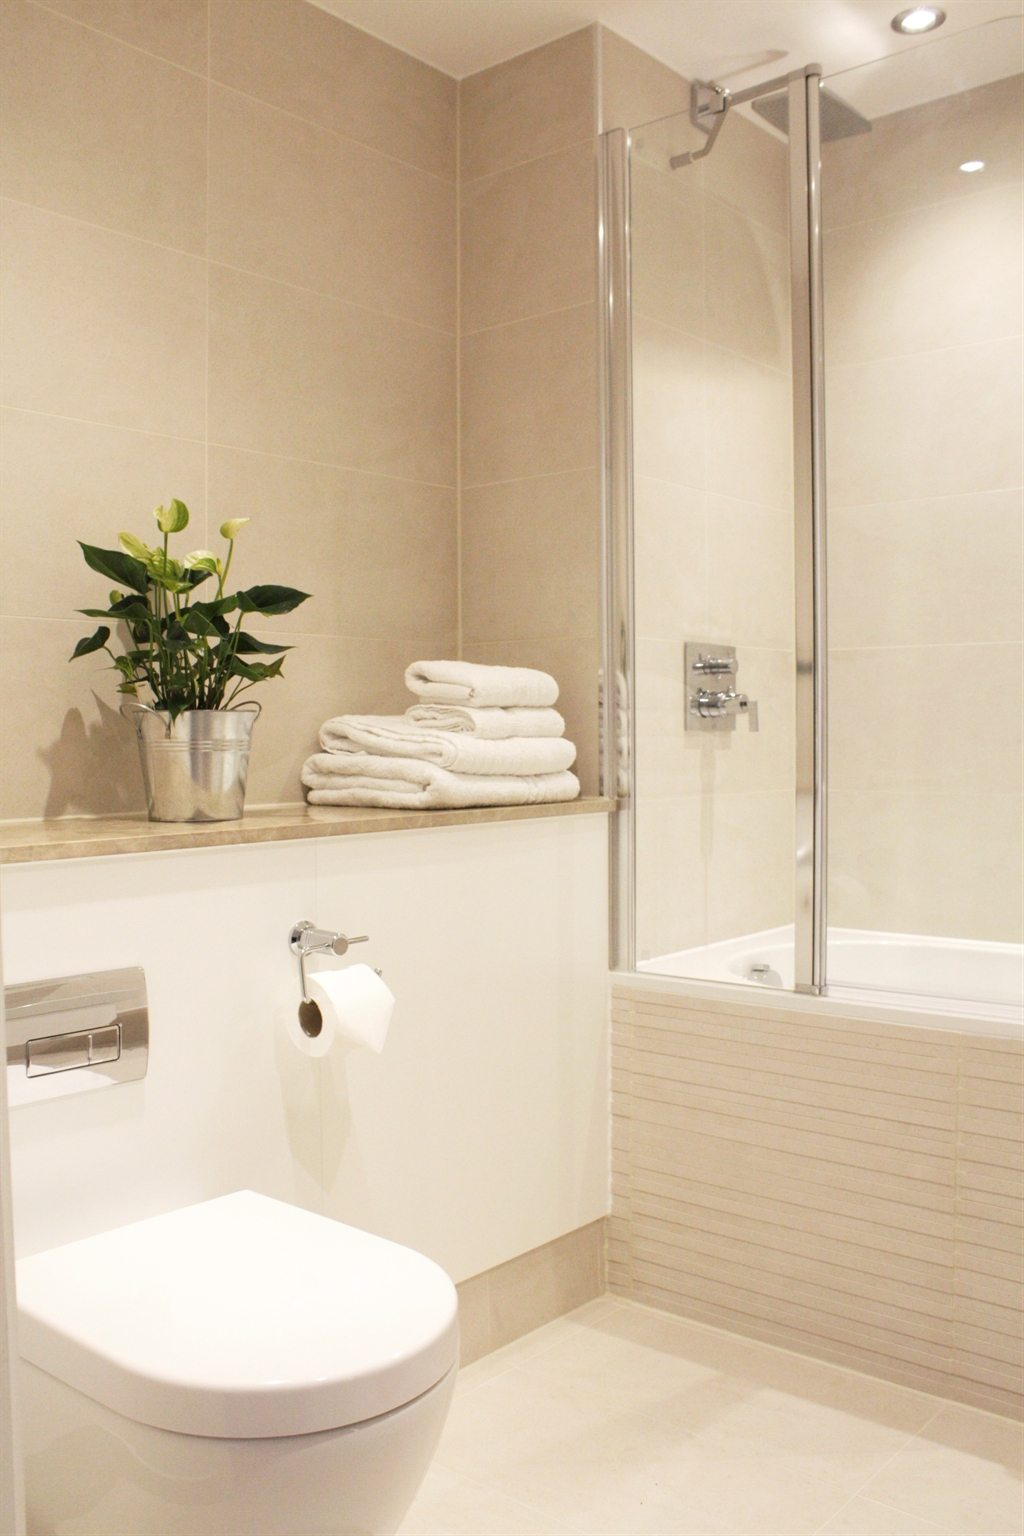 Portobello-Road-Serviced-Apartments---Notting-Hill-London---Bathroom